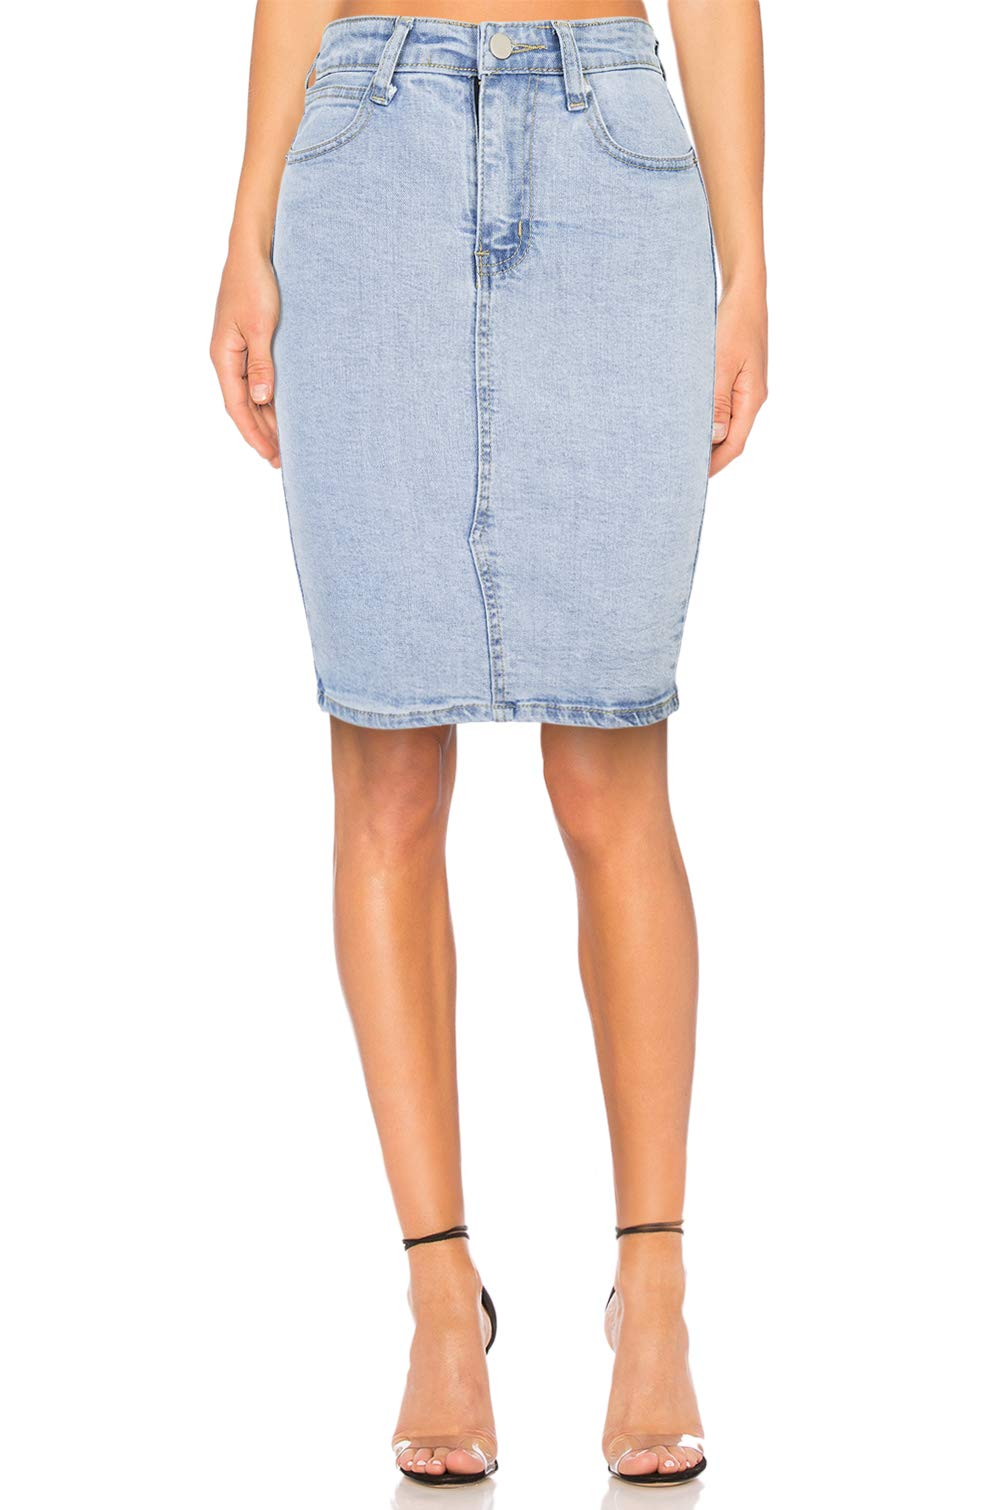 5116874f6346 High Waisted Jeans Skirts for Women Midi Knee Length Stretch Denim Pencil  ...